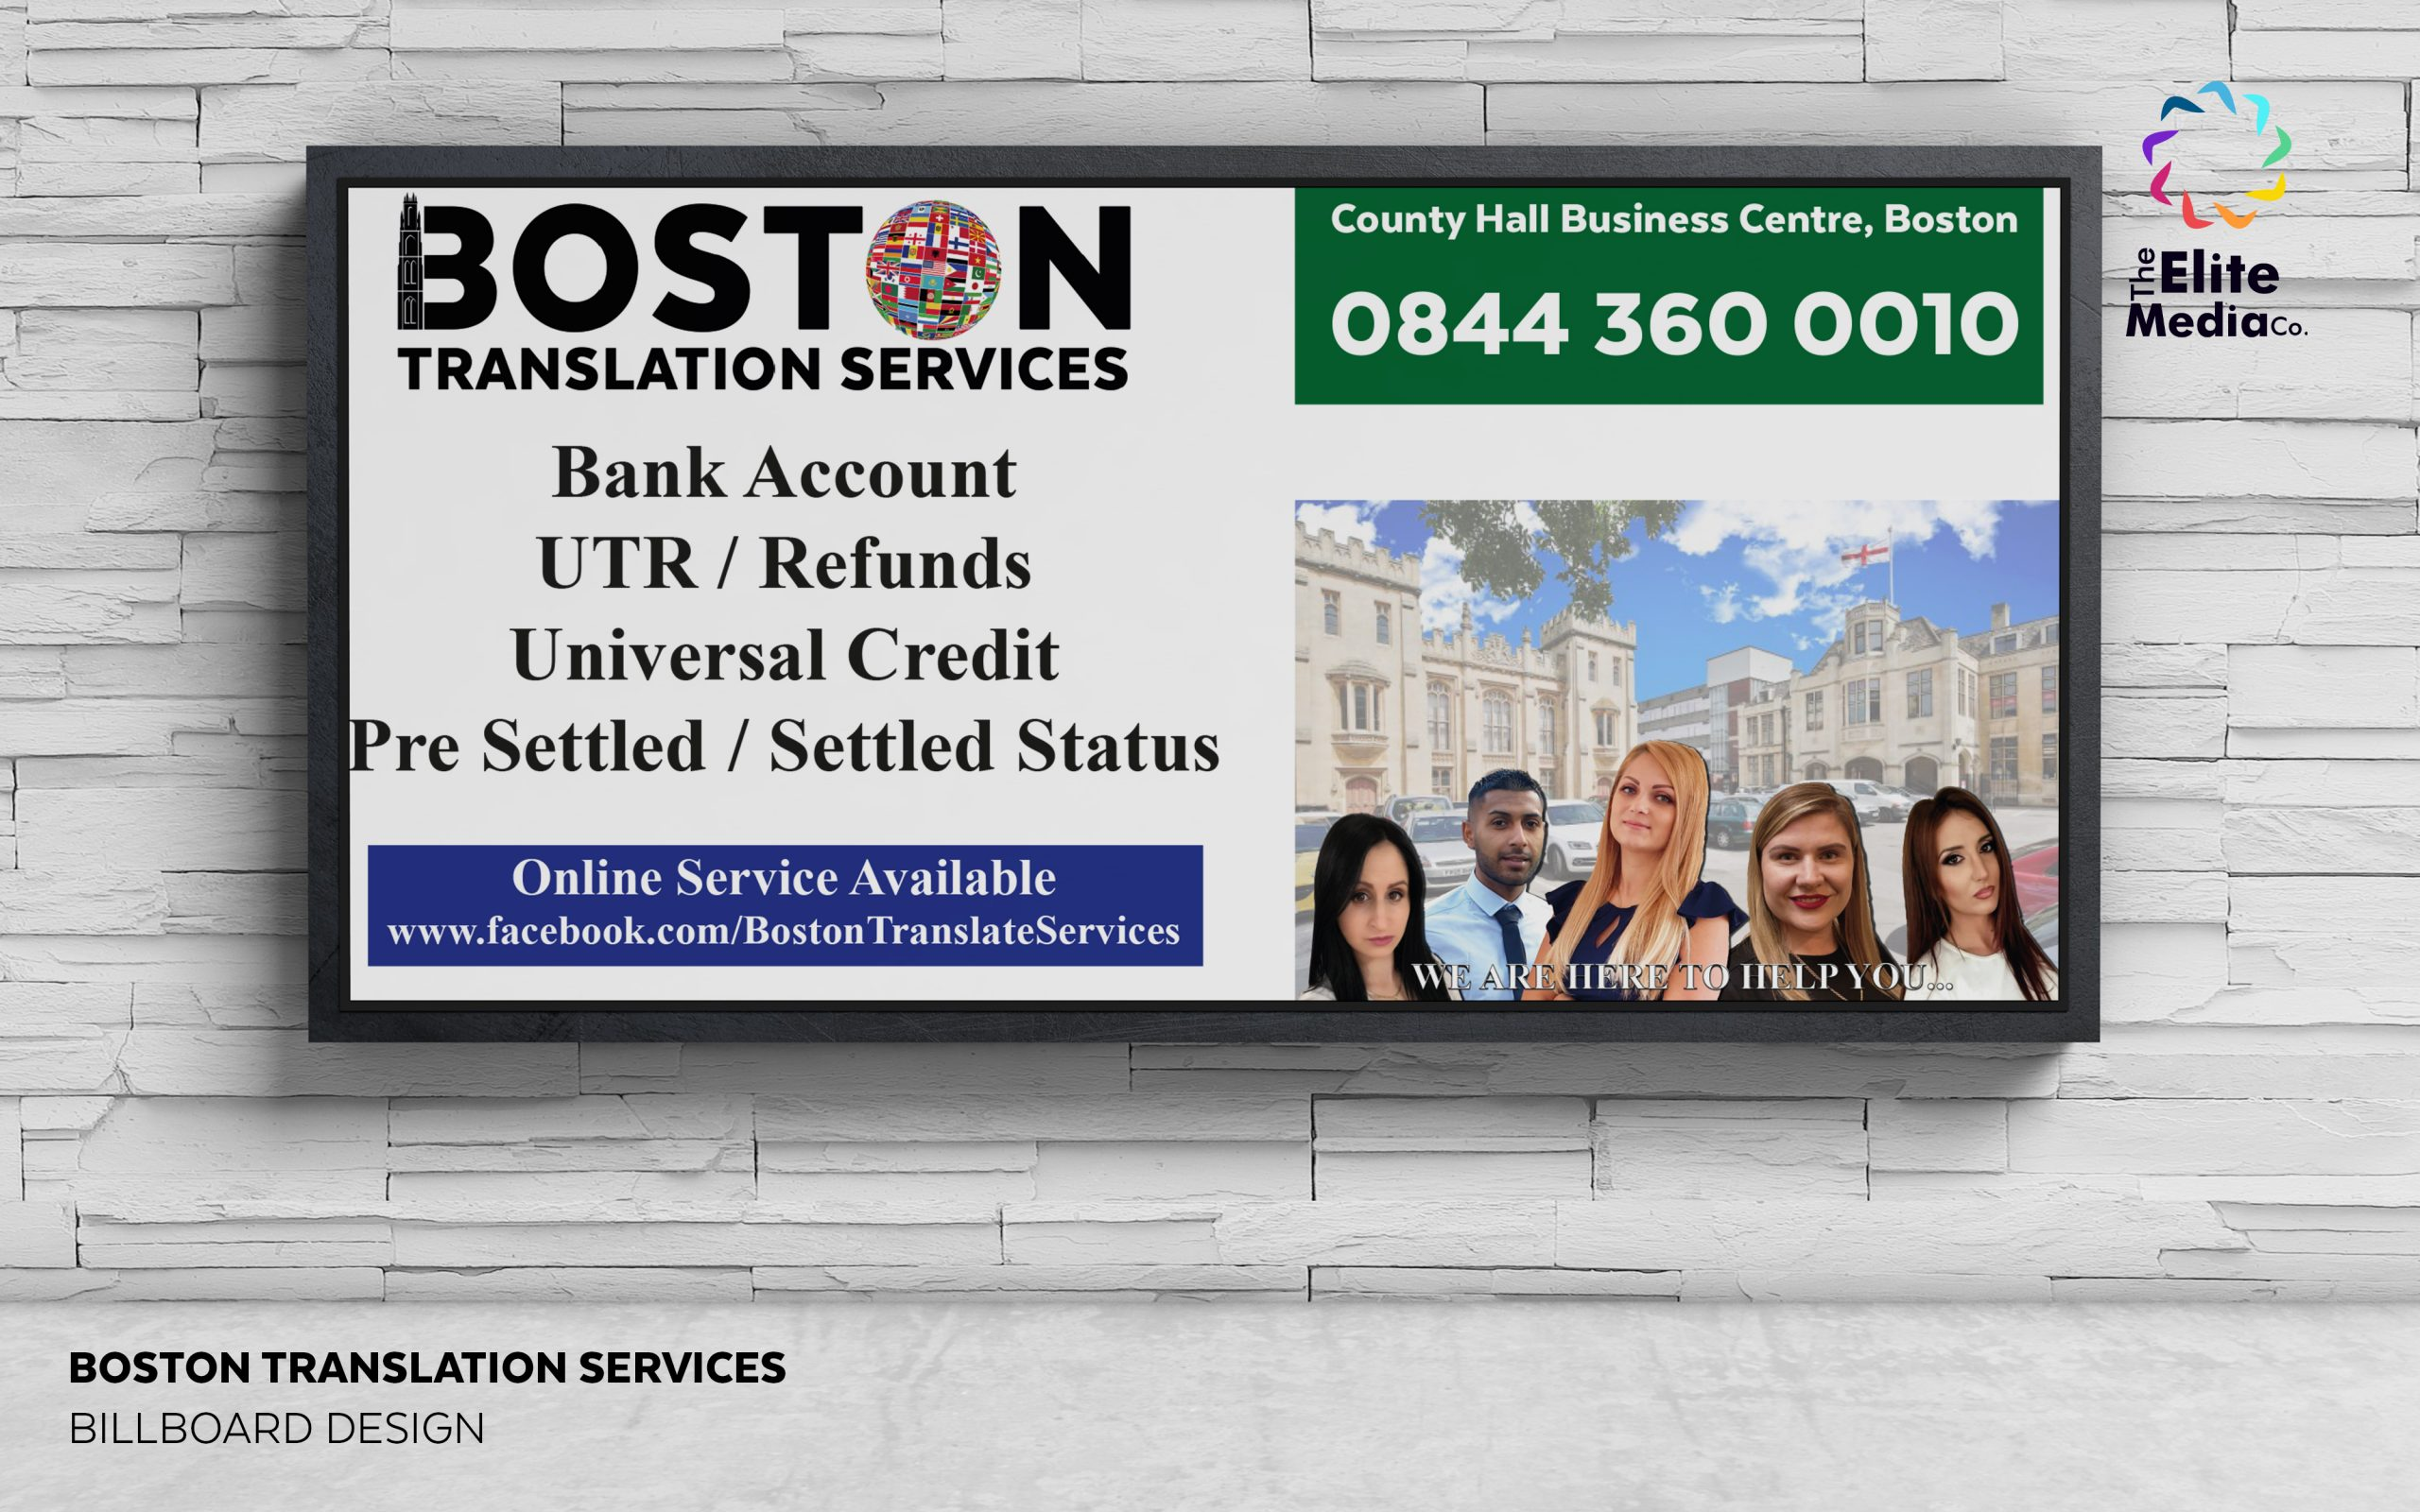 Boston Translation Services – Billboard